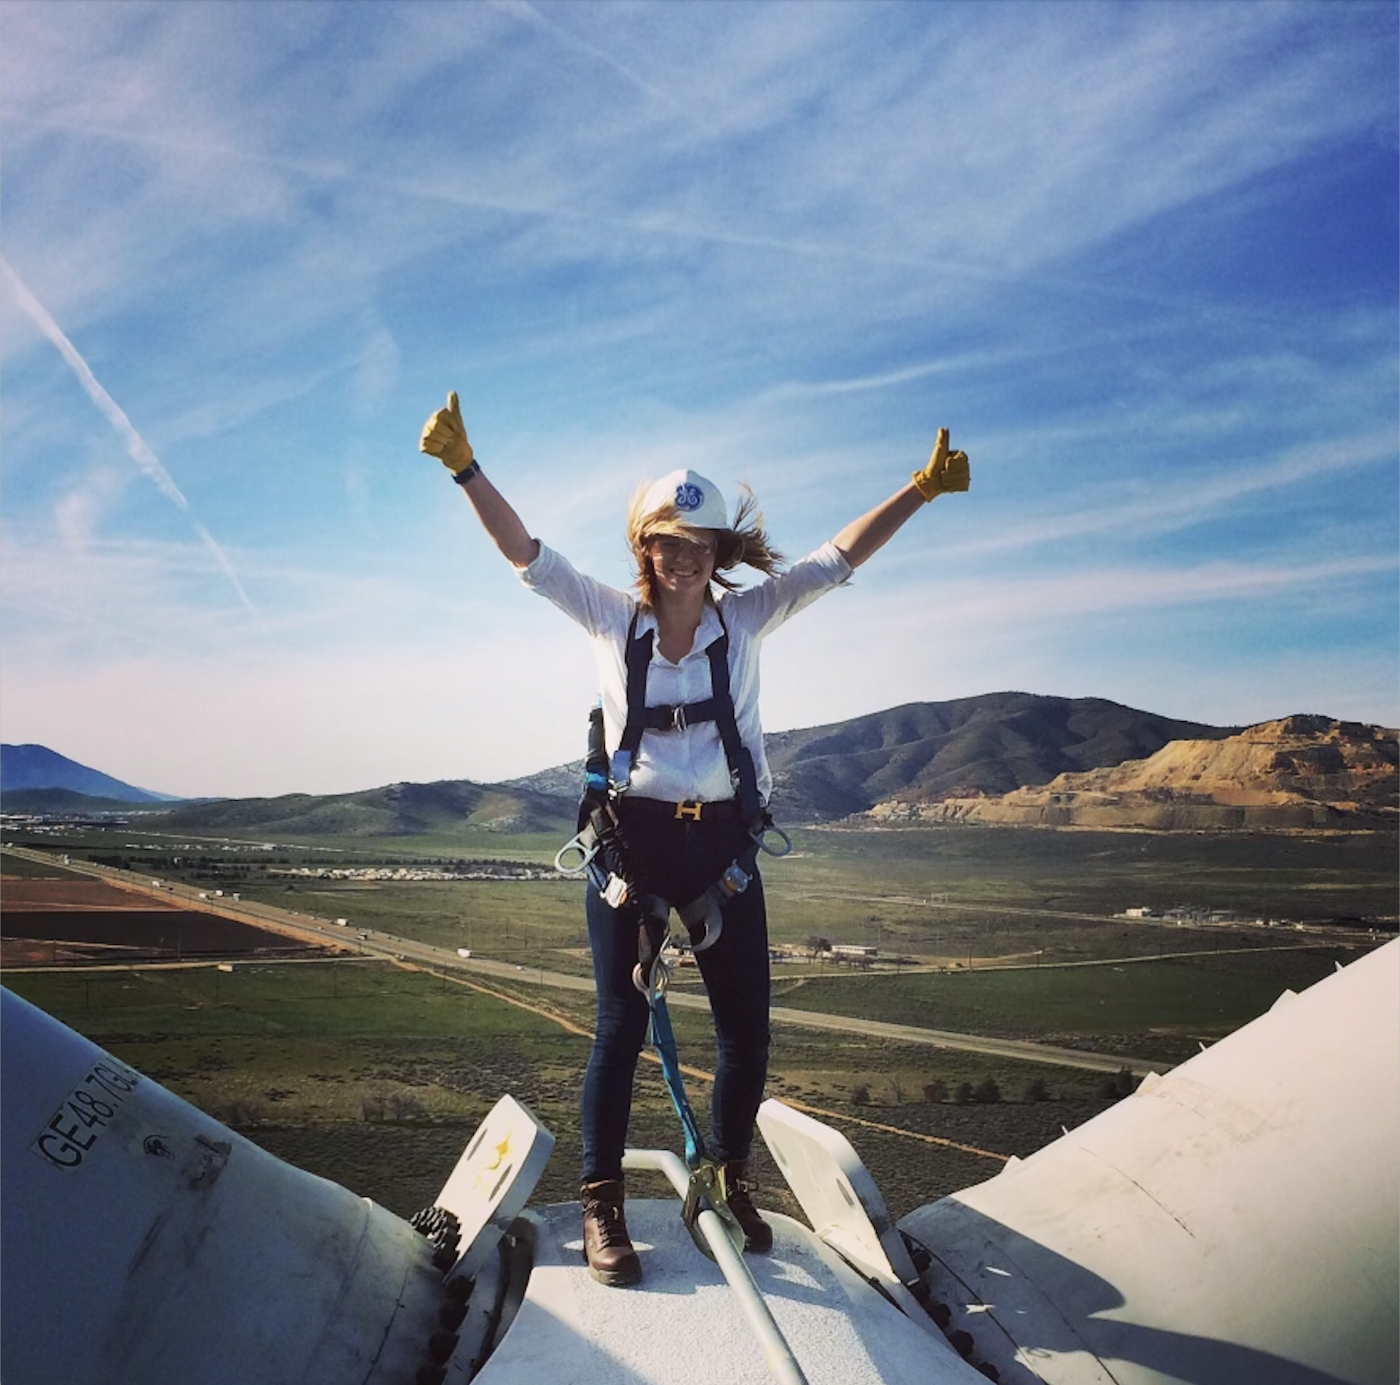 A blonde woman stands on top of a wind turbine with her arms raised